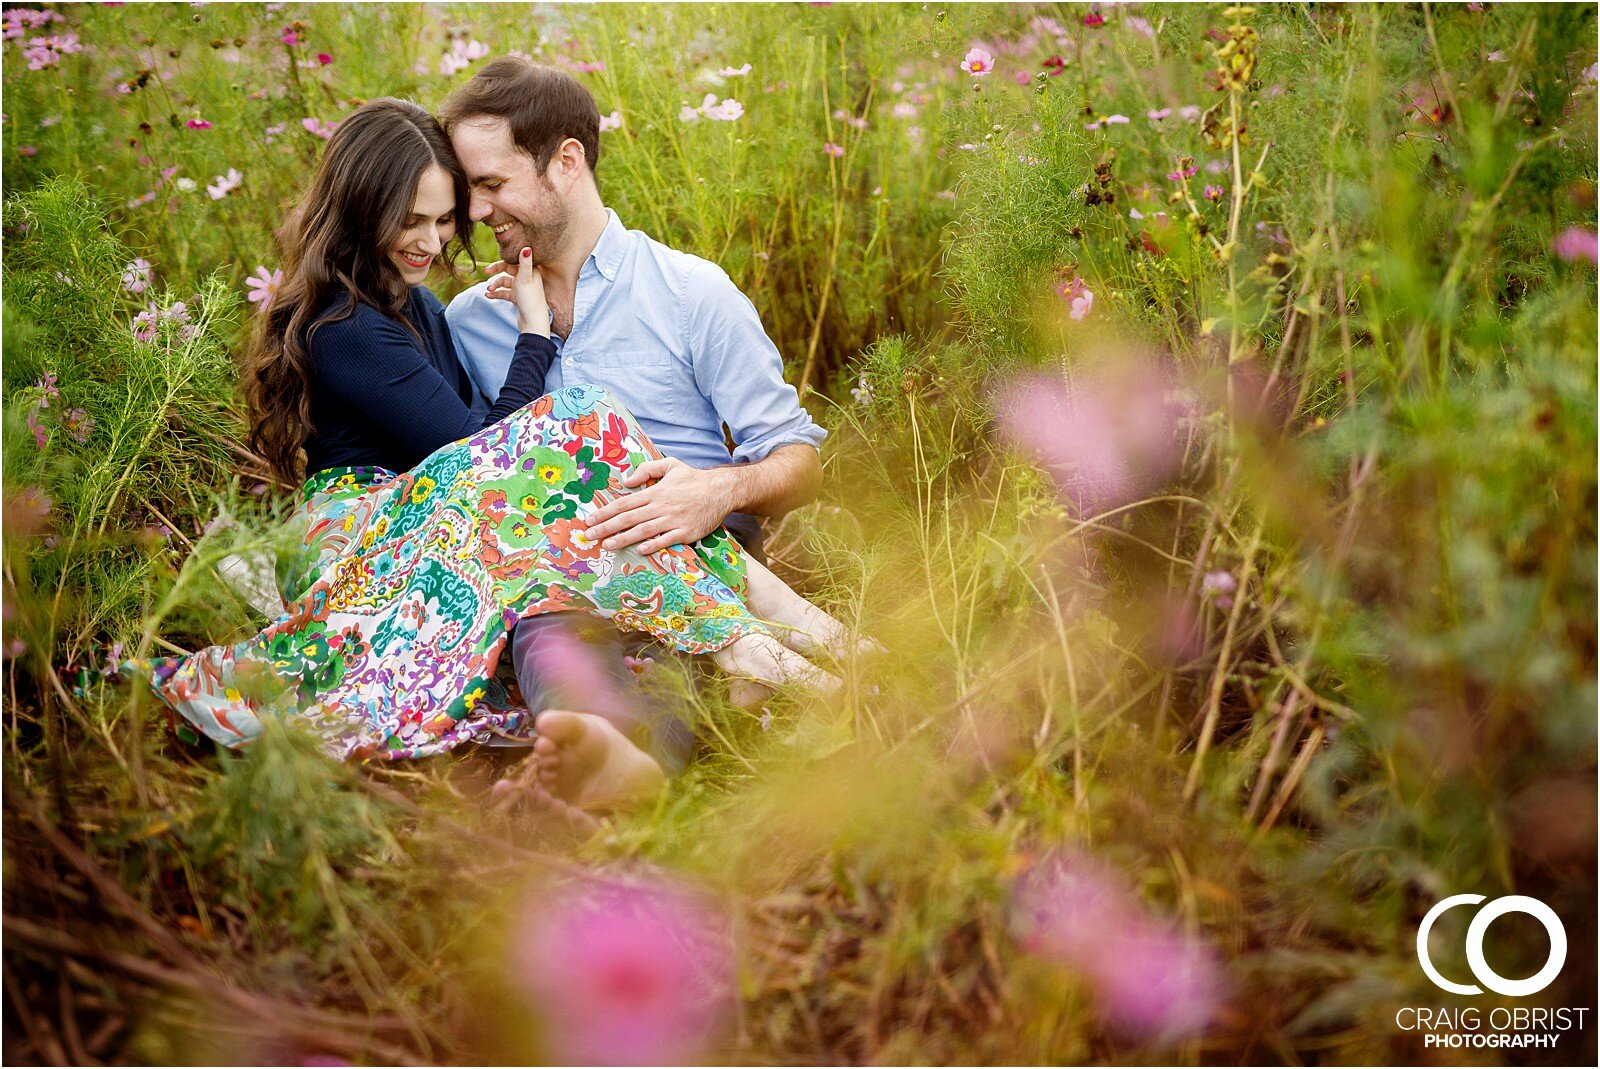 The Barn at Little River Little River Farms Engagement Wedding Portraits Fairy Tale_0025.jpg